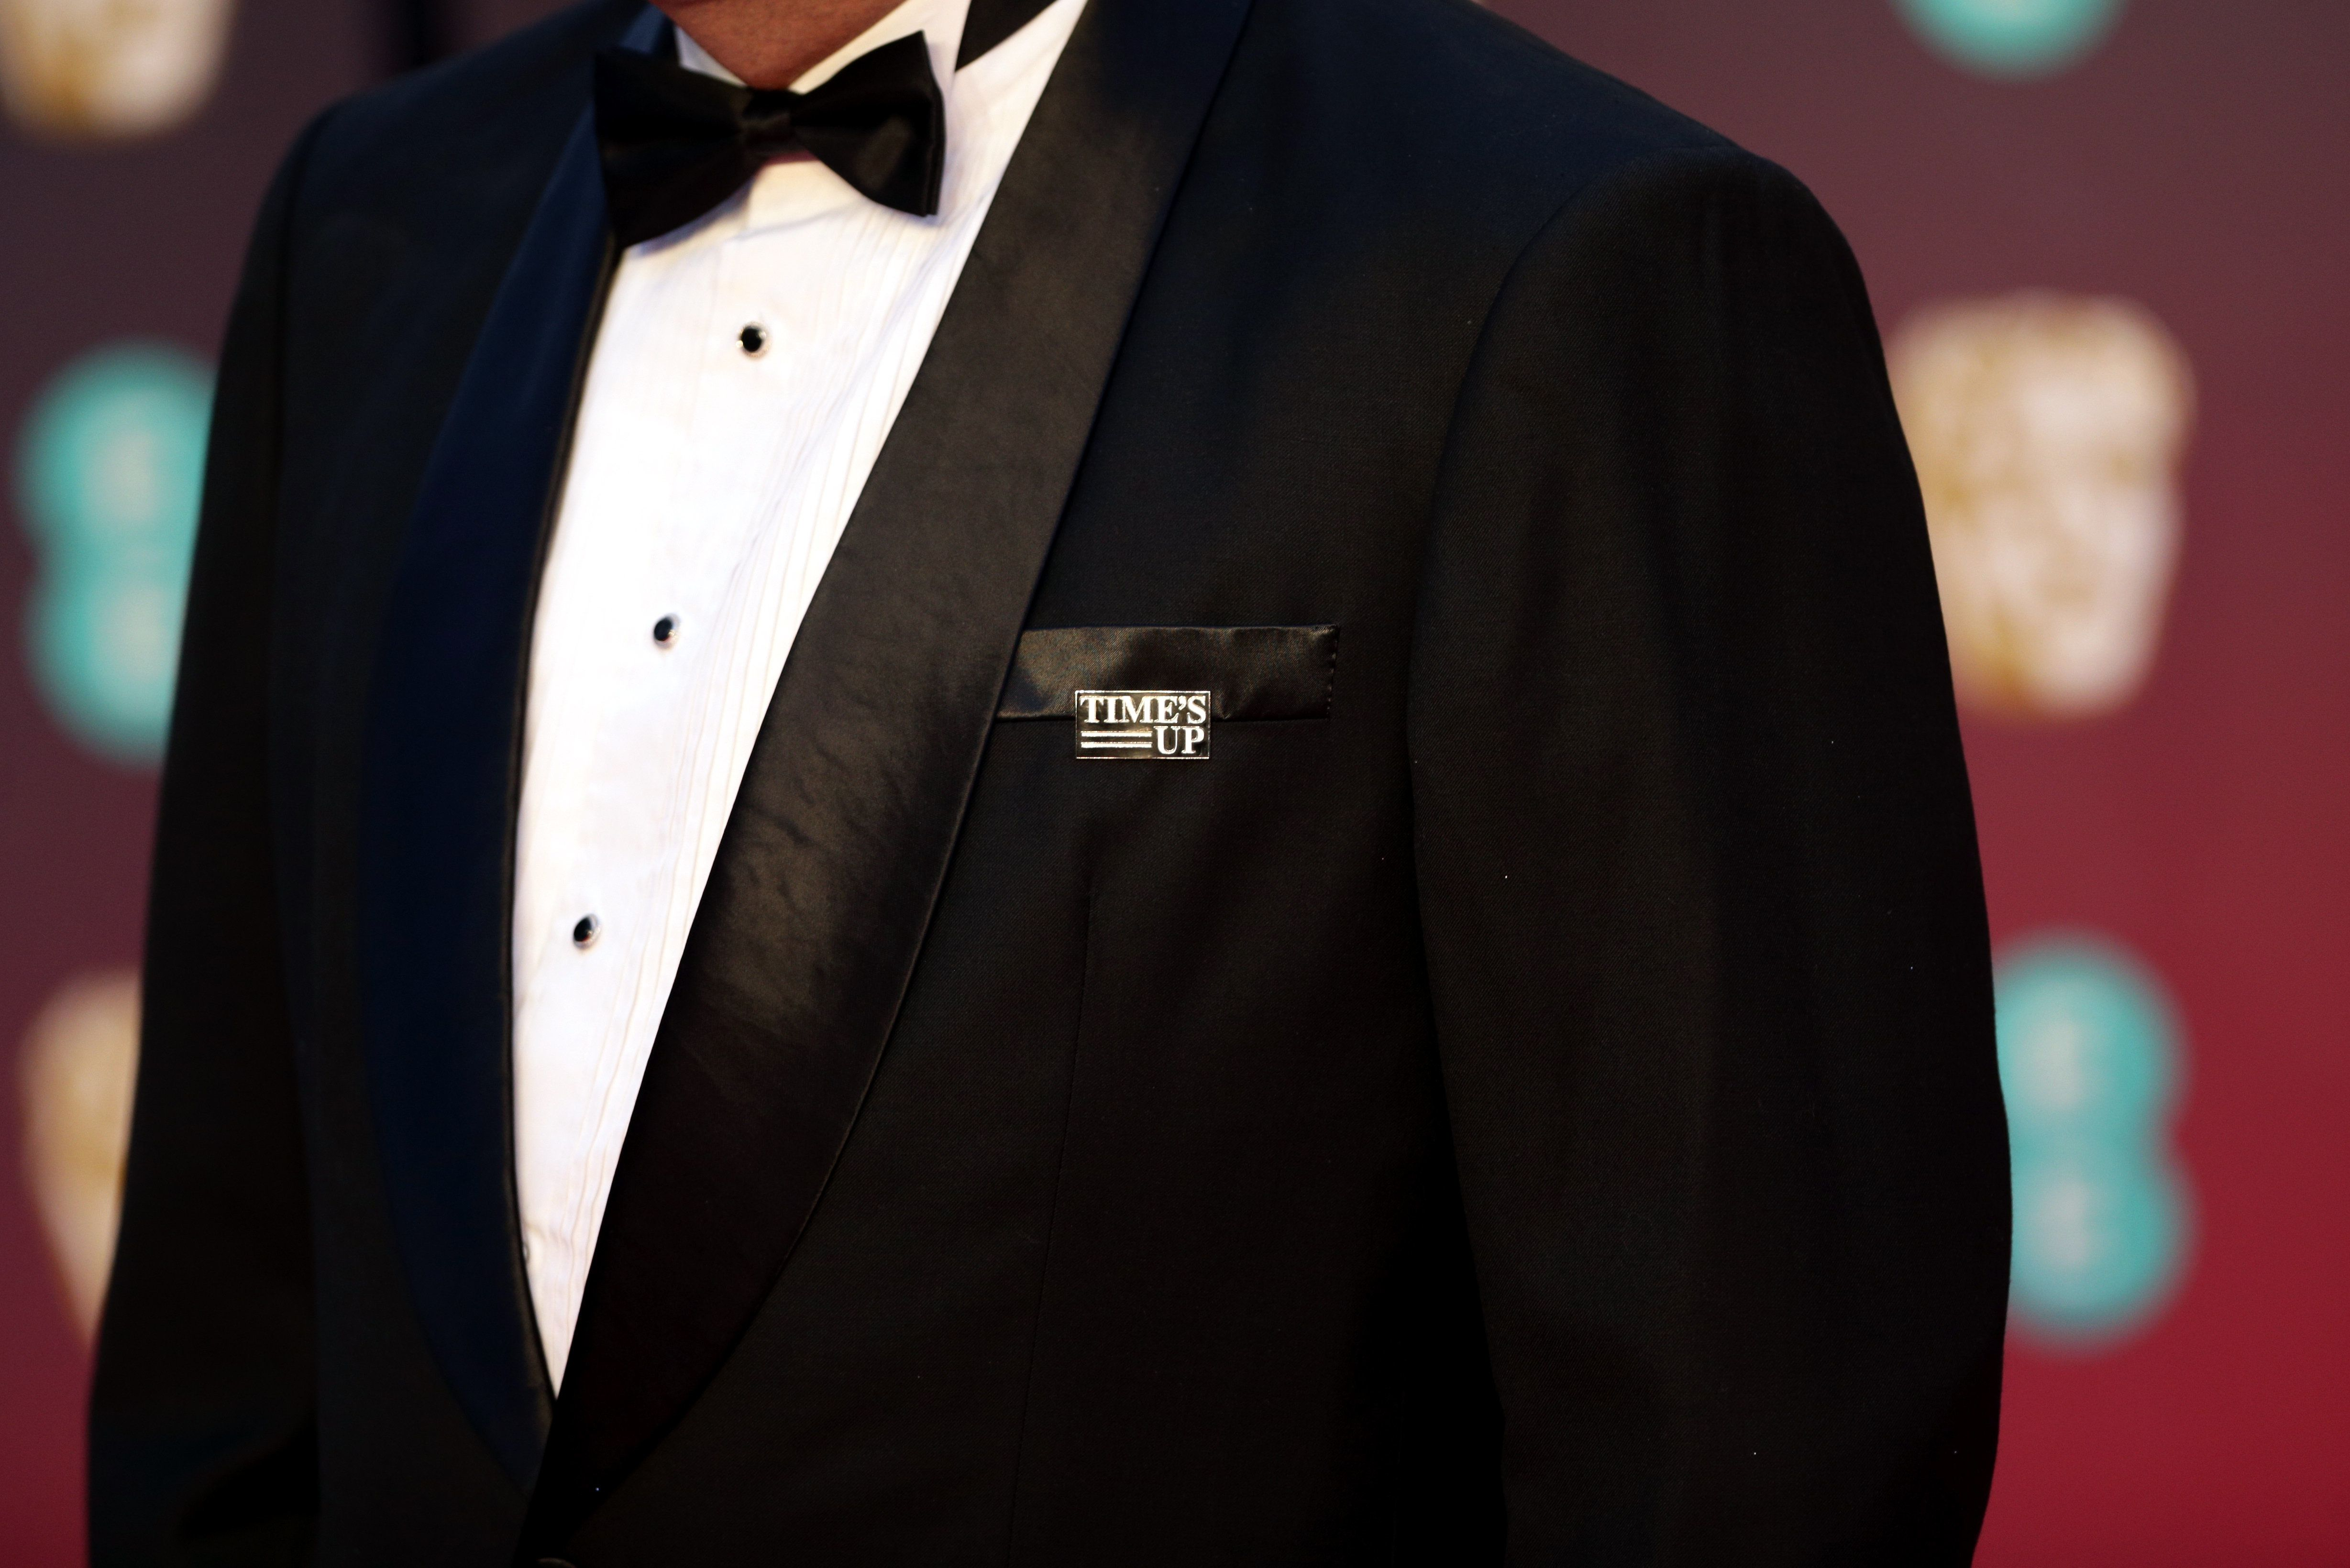 A guest on the BAFTA's red carpet wears a Time's Up pin in support of the anti-sexual misconduct